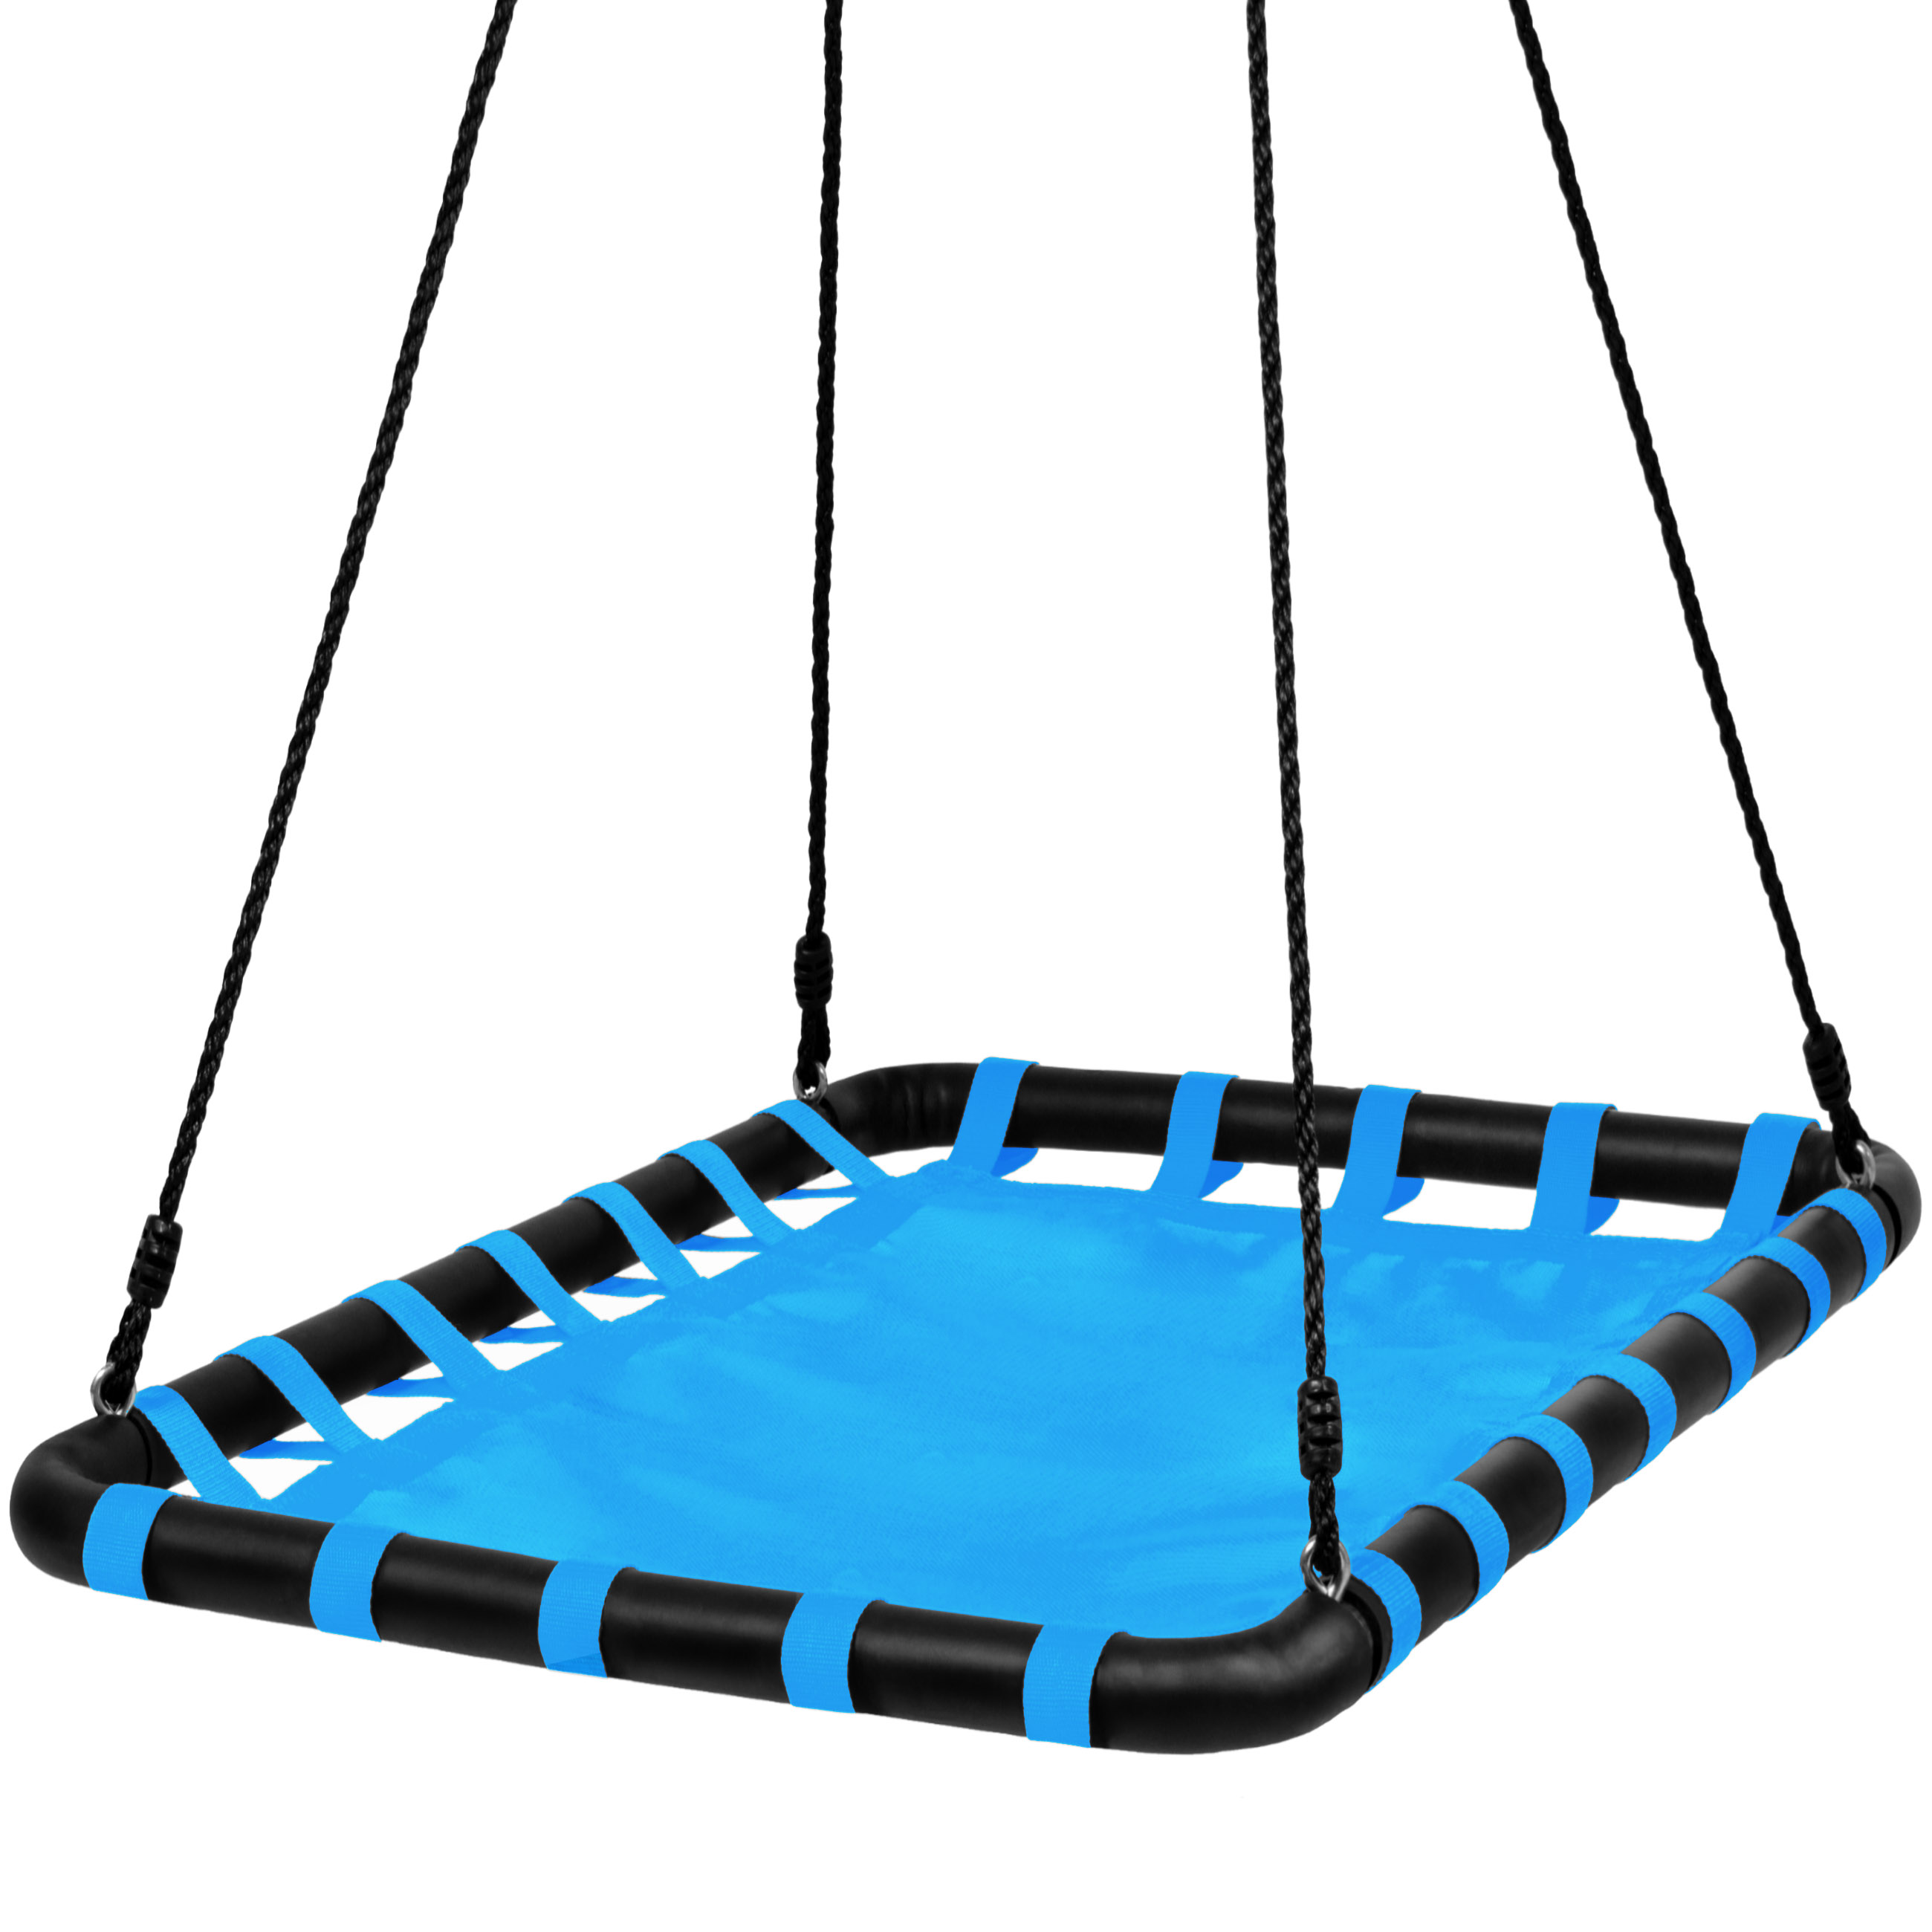 Best Choice Products 40x30in Kids Outdoor Large Heavy-Duty Mat Platform Tree Spinning Swing w/ Rope, Metal Loops - Blue